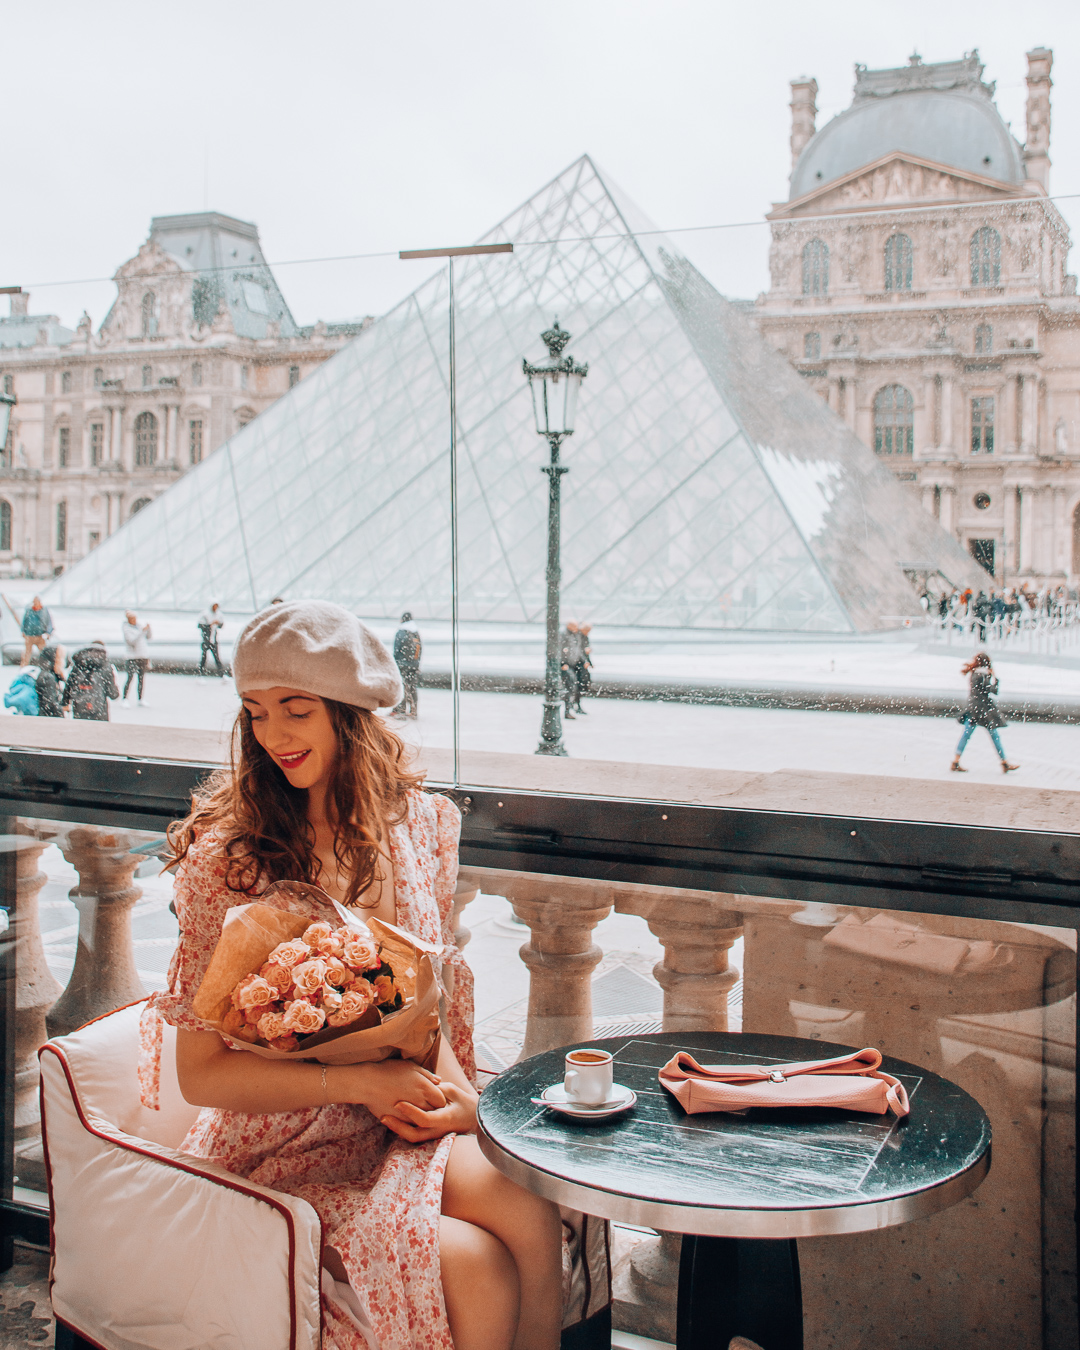 Cafe in Paris at the Louvre